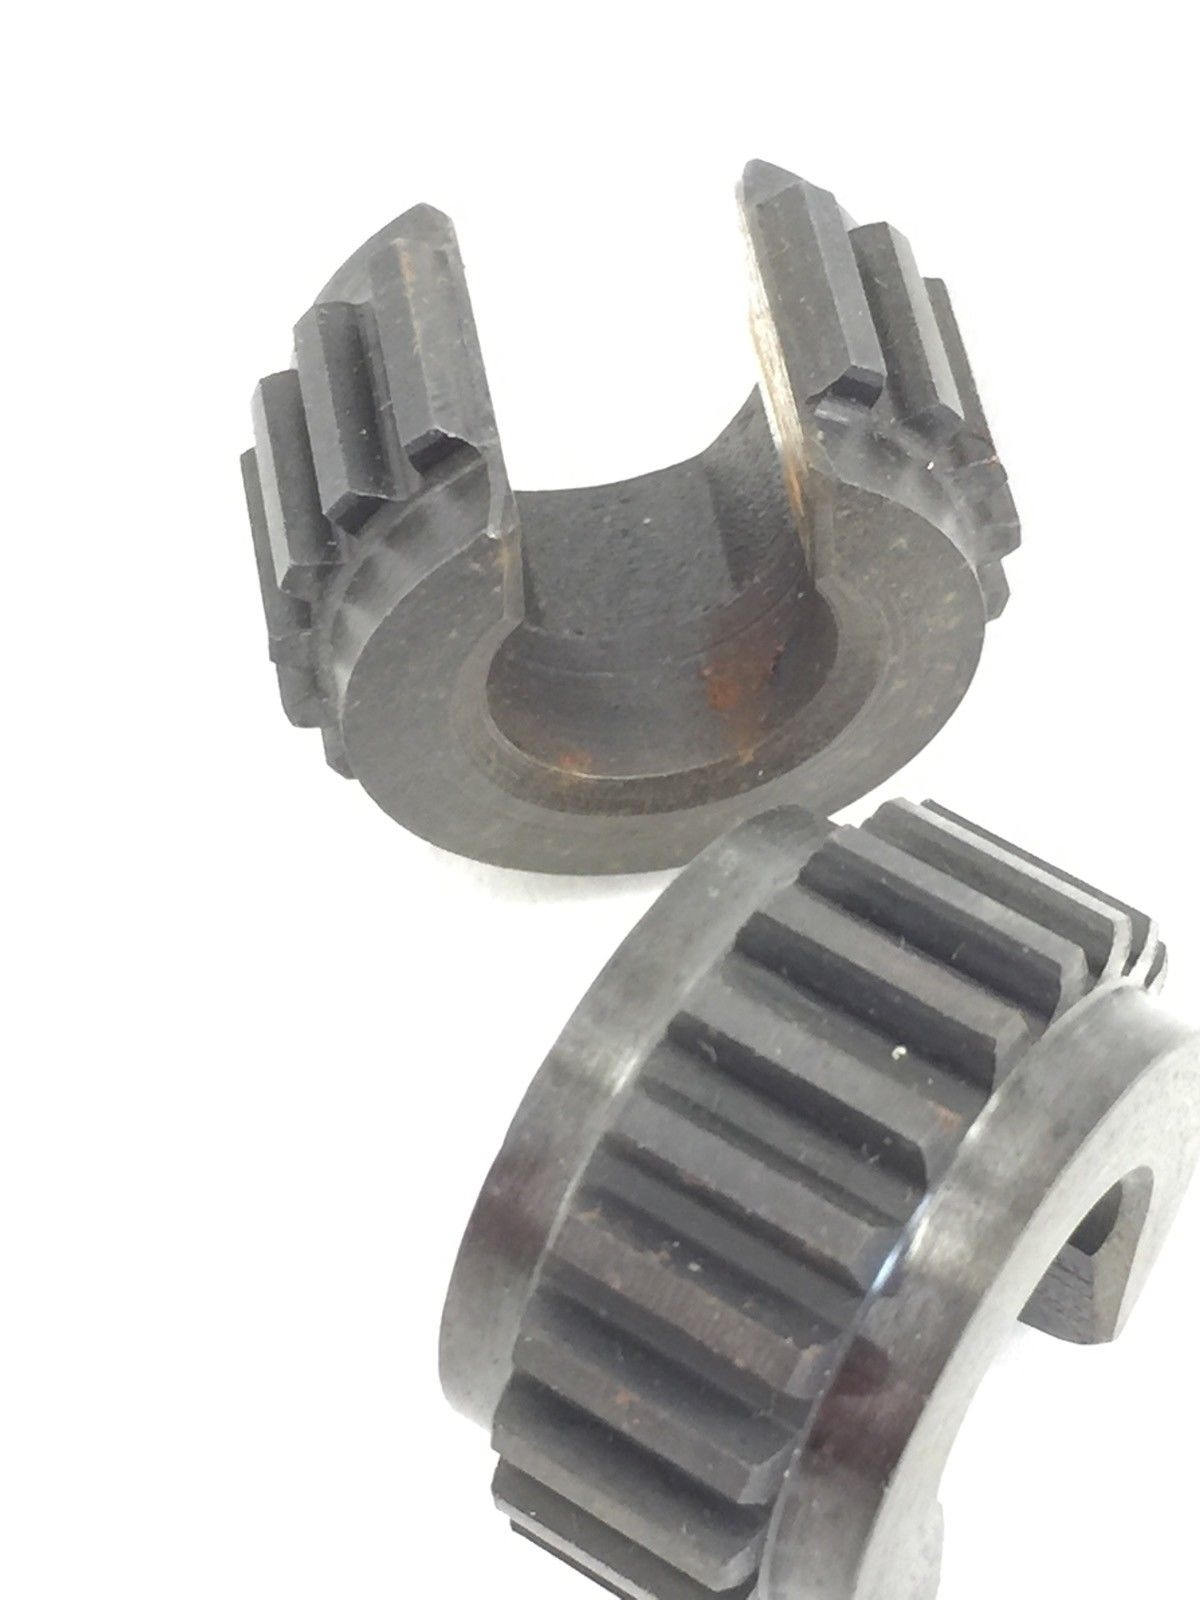 NEW! C SHAPED GEARs 20C 18T 12mm BORE 30mm O.D